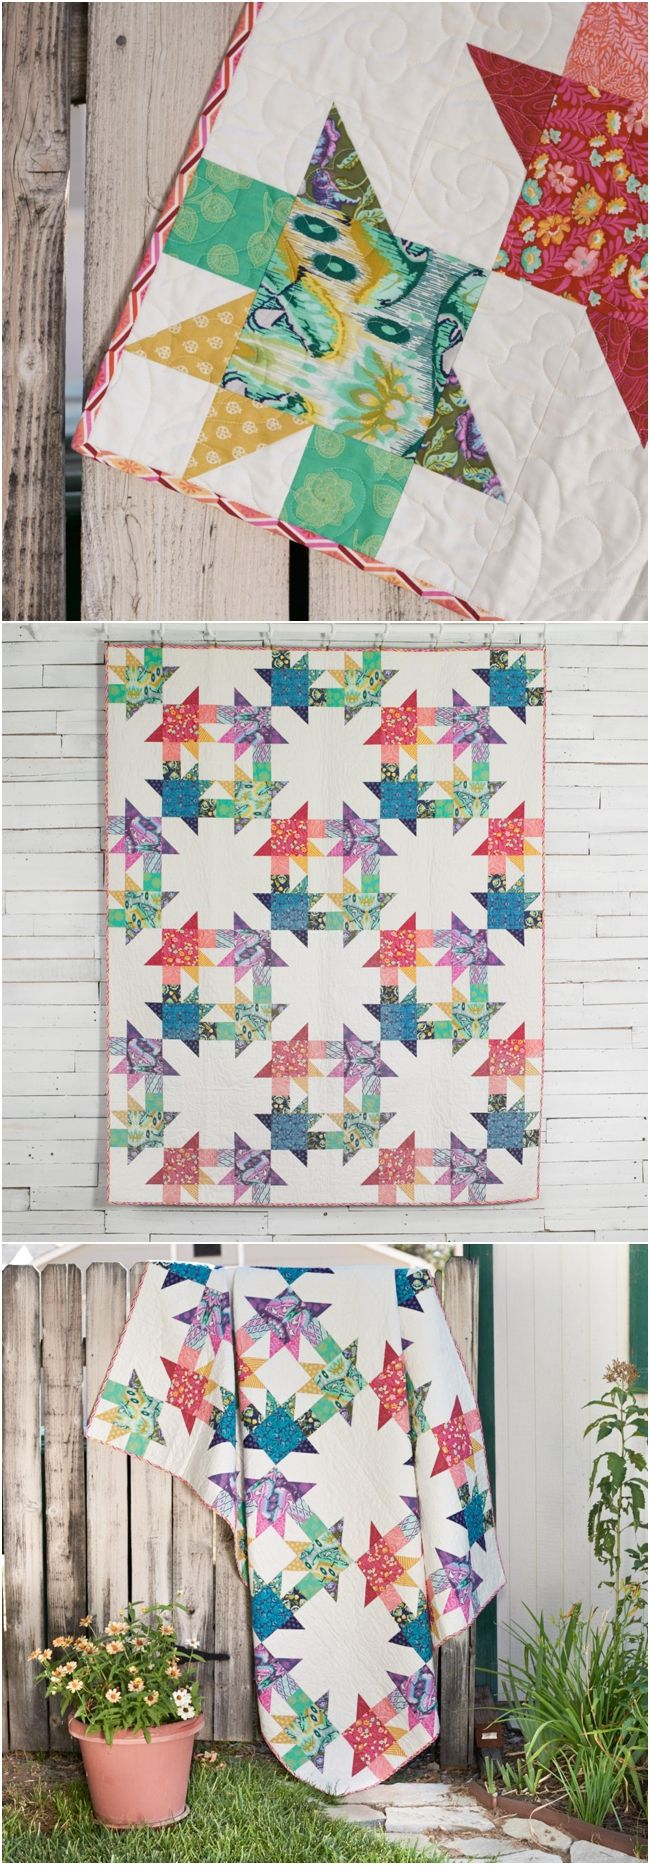 Hot House Quilt Kit by Craftsy by Stacey Day featuring FreeSpirit True Colors by Tula Pink. #modernquilting #tulatroops #tulapink affiliate link.